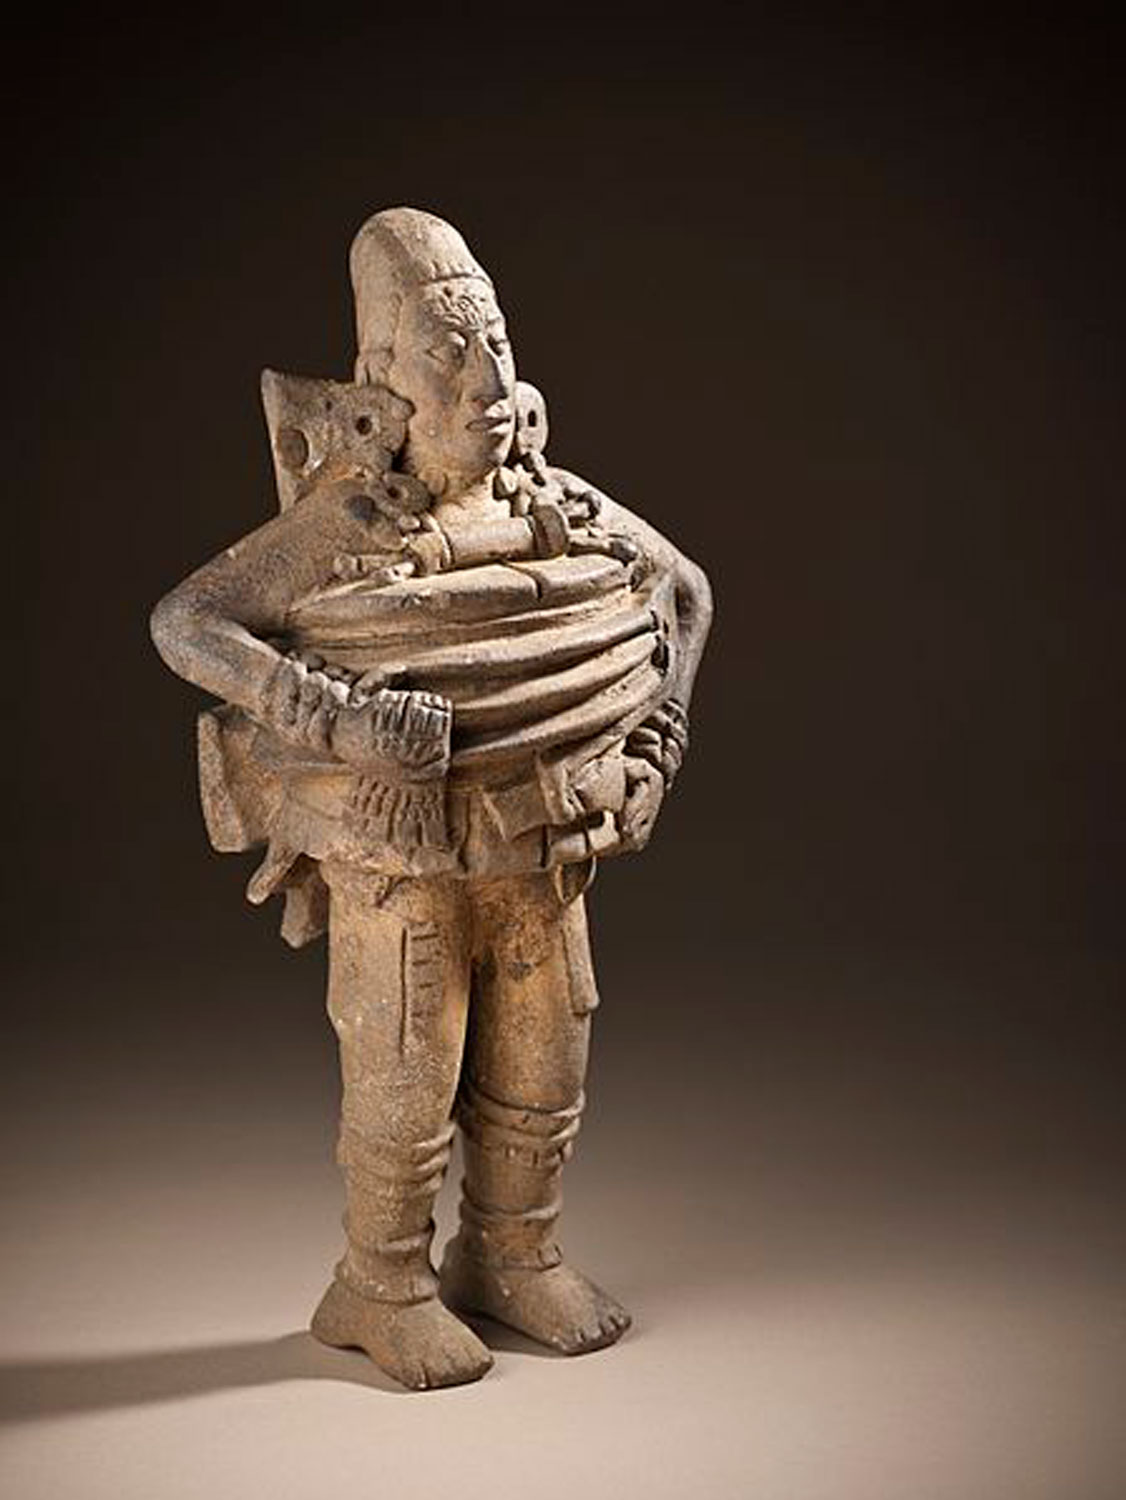 Ceramic sculpture of a ball player from Guatemala, 550-850 AD. Source:  pinterest.com.mx .